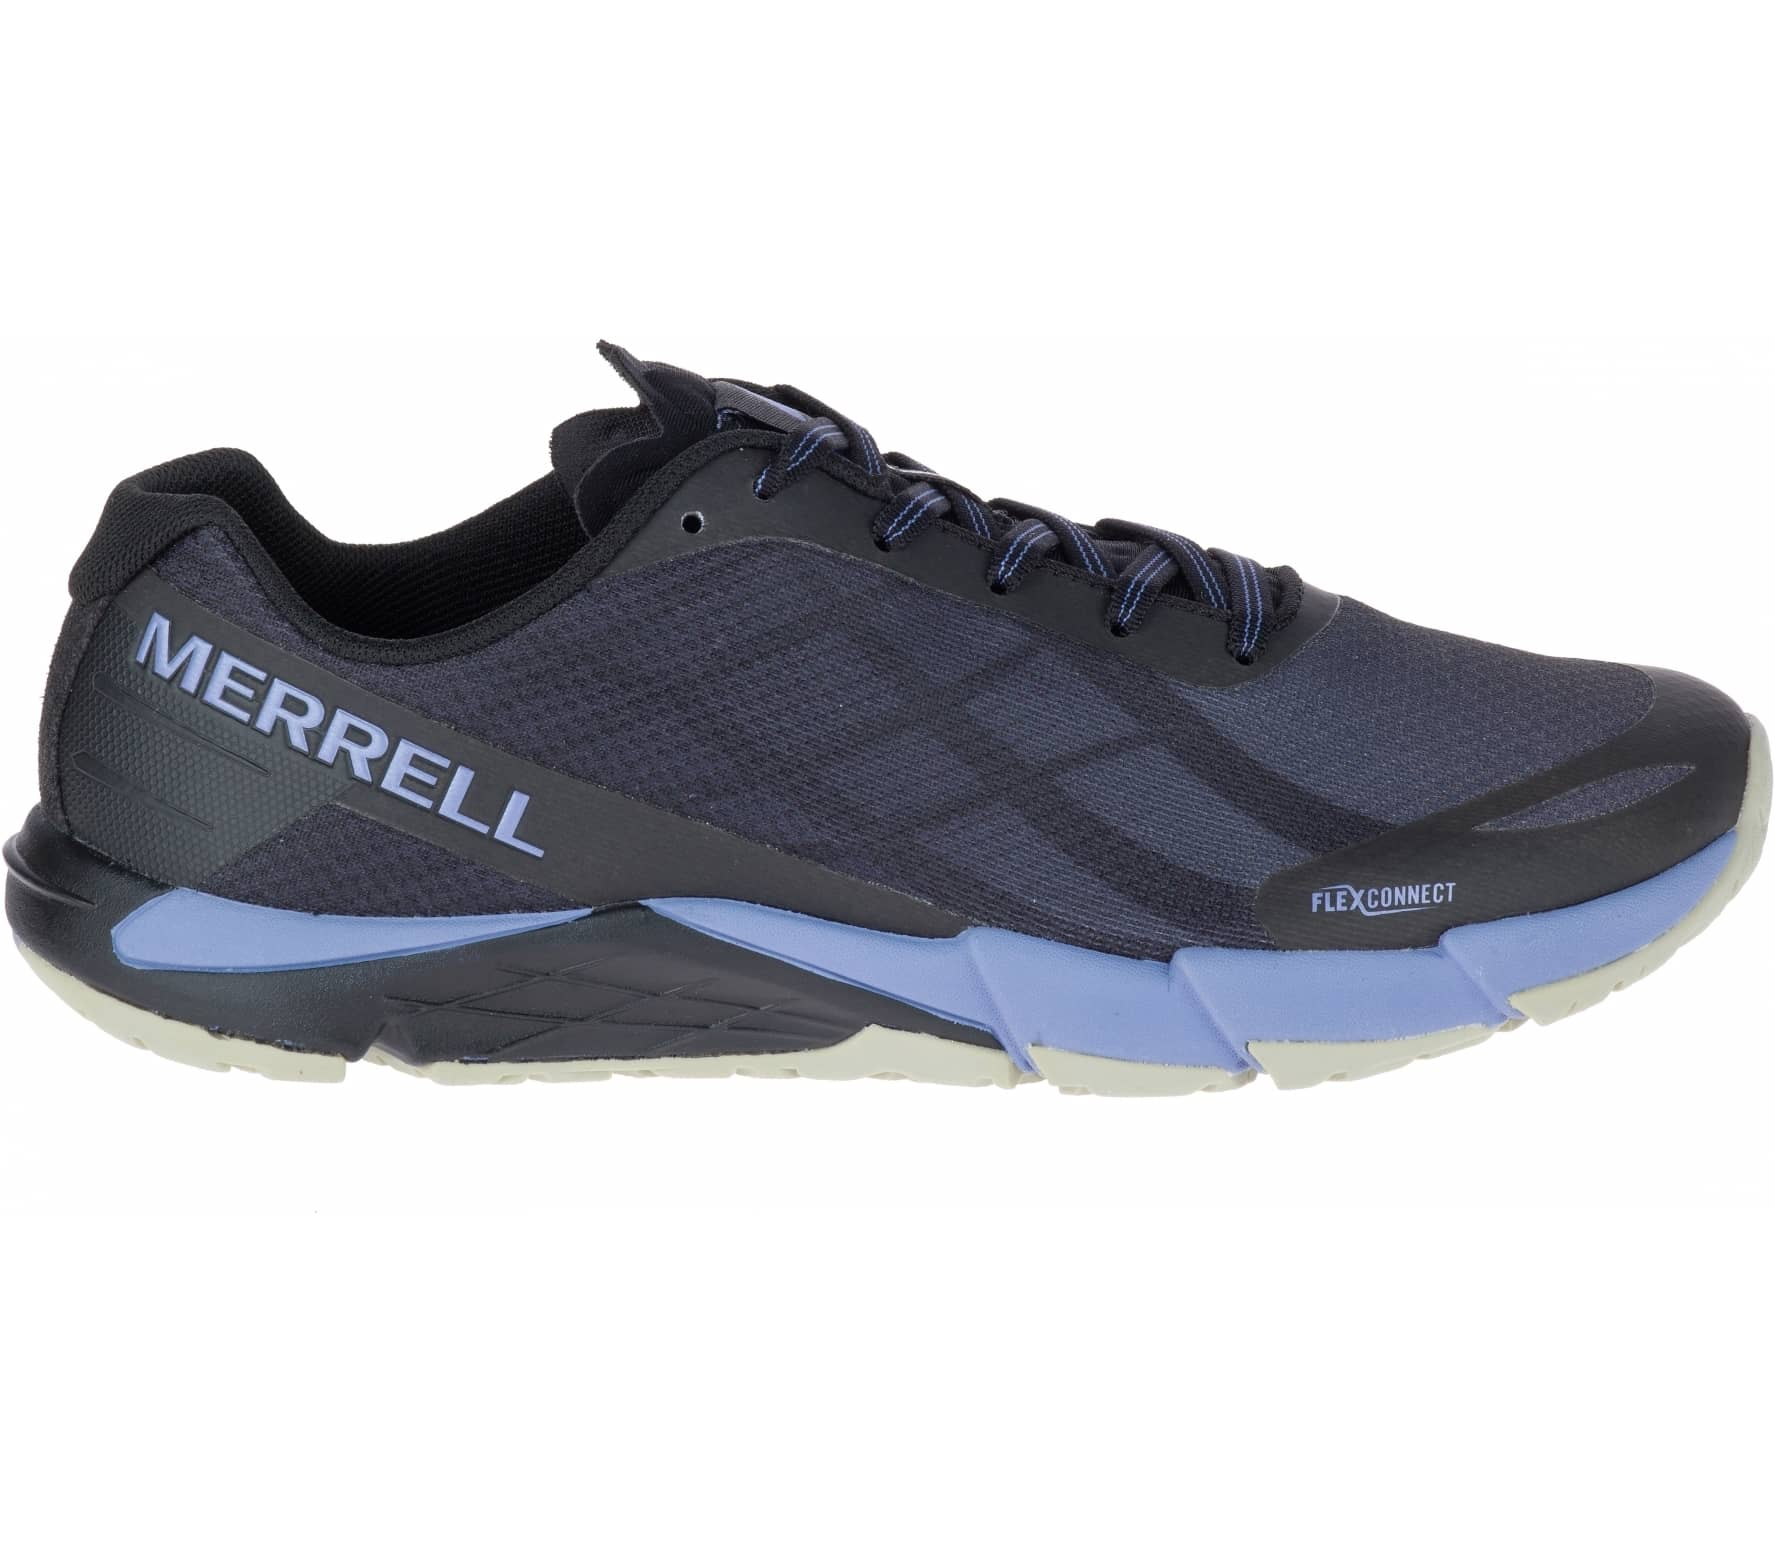 Merrell - Bare Access Flex Damen Mountain Runni...